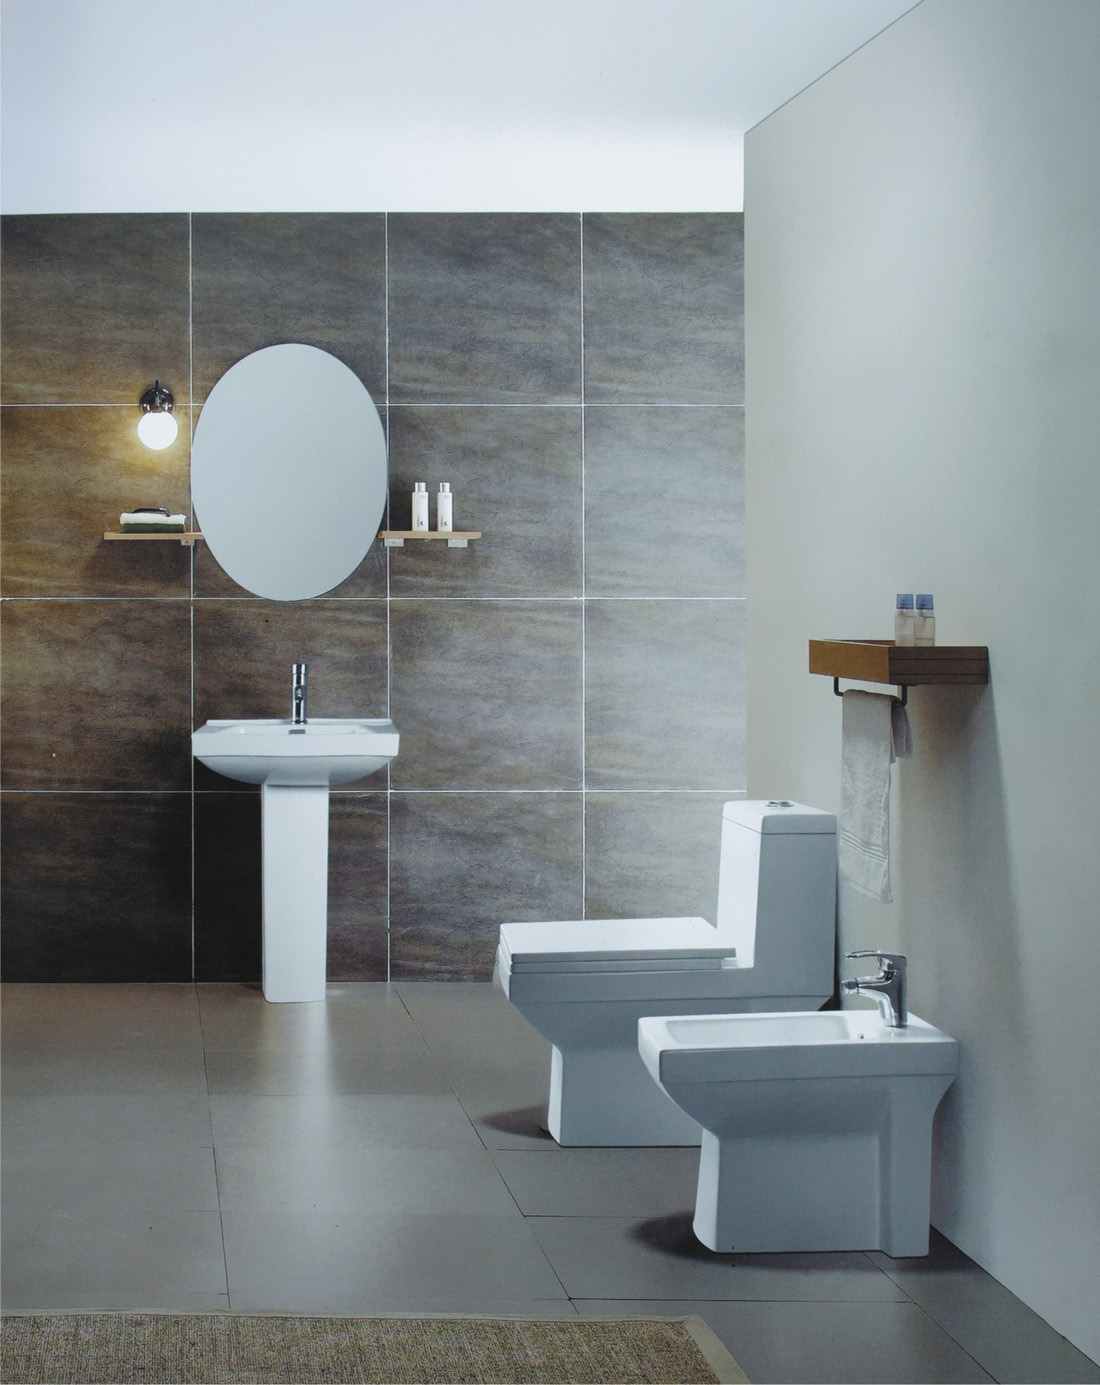 Bathroom tiles johnson india with innovative innovation in for Bathroom ideas india